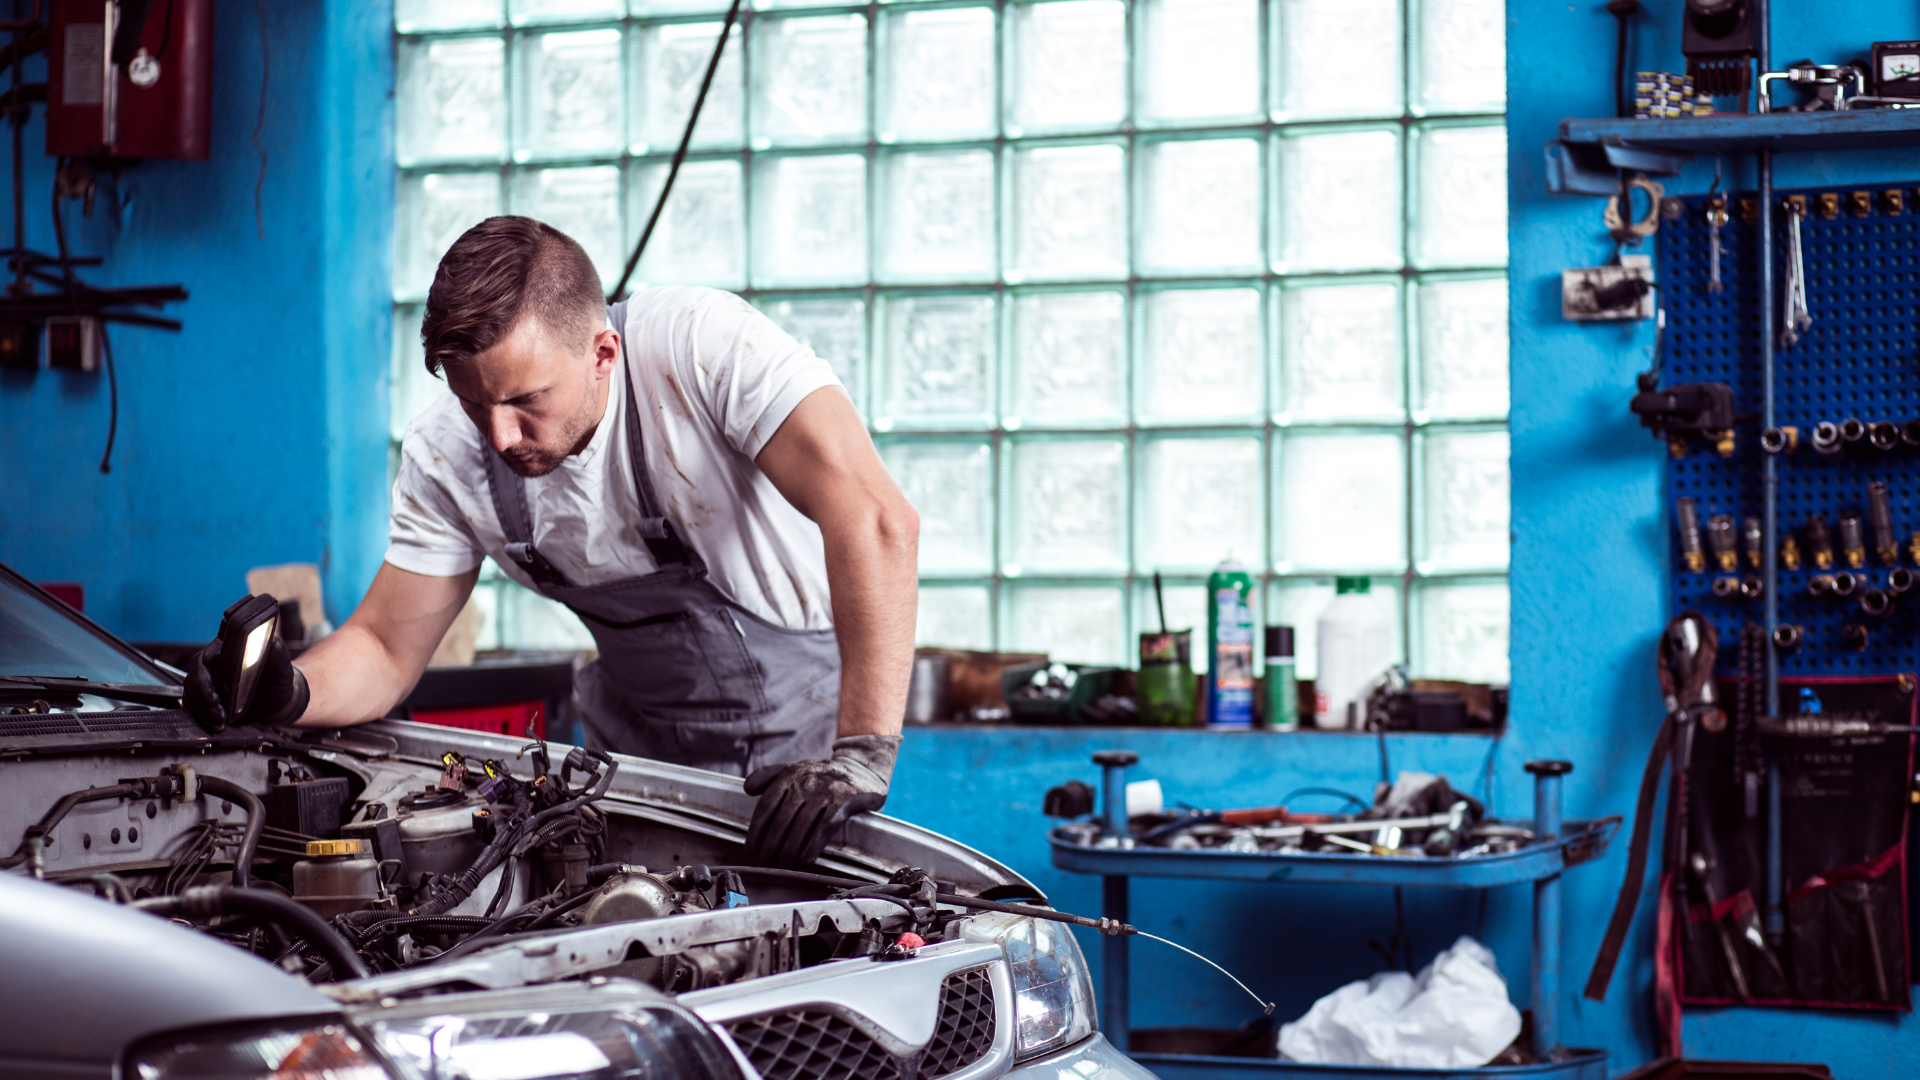 Mechanic Jobs For Freshers In Dubai Are Open In Dubai Uae